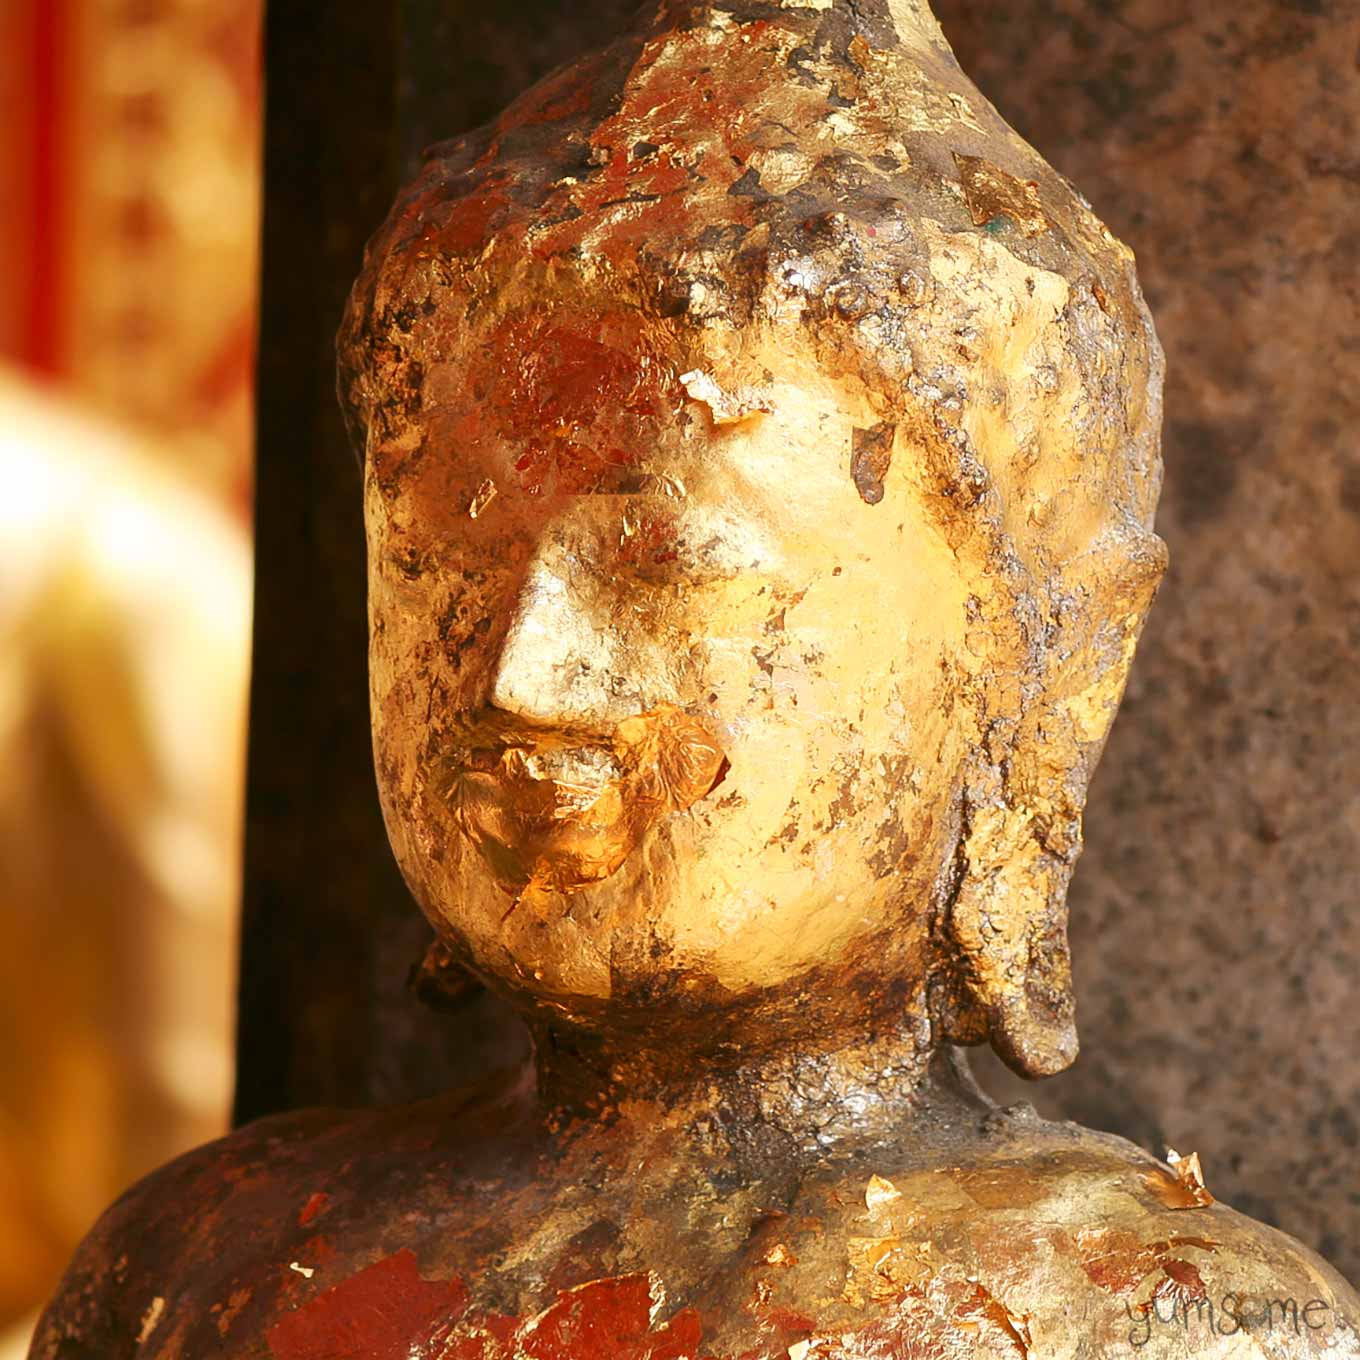 An old golden Buddha statue, with flaking gold leaf, showing signs of repeated repair.